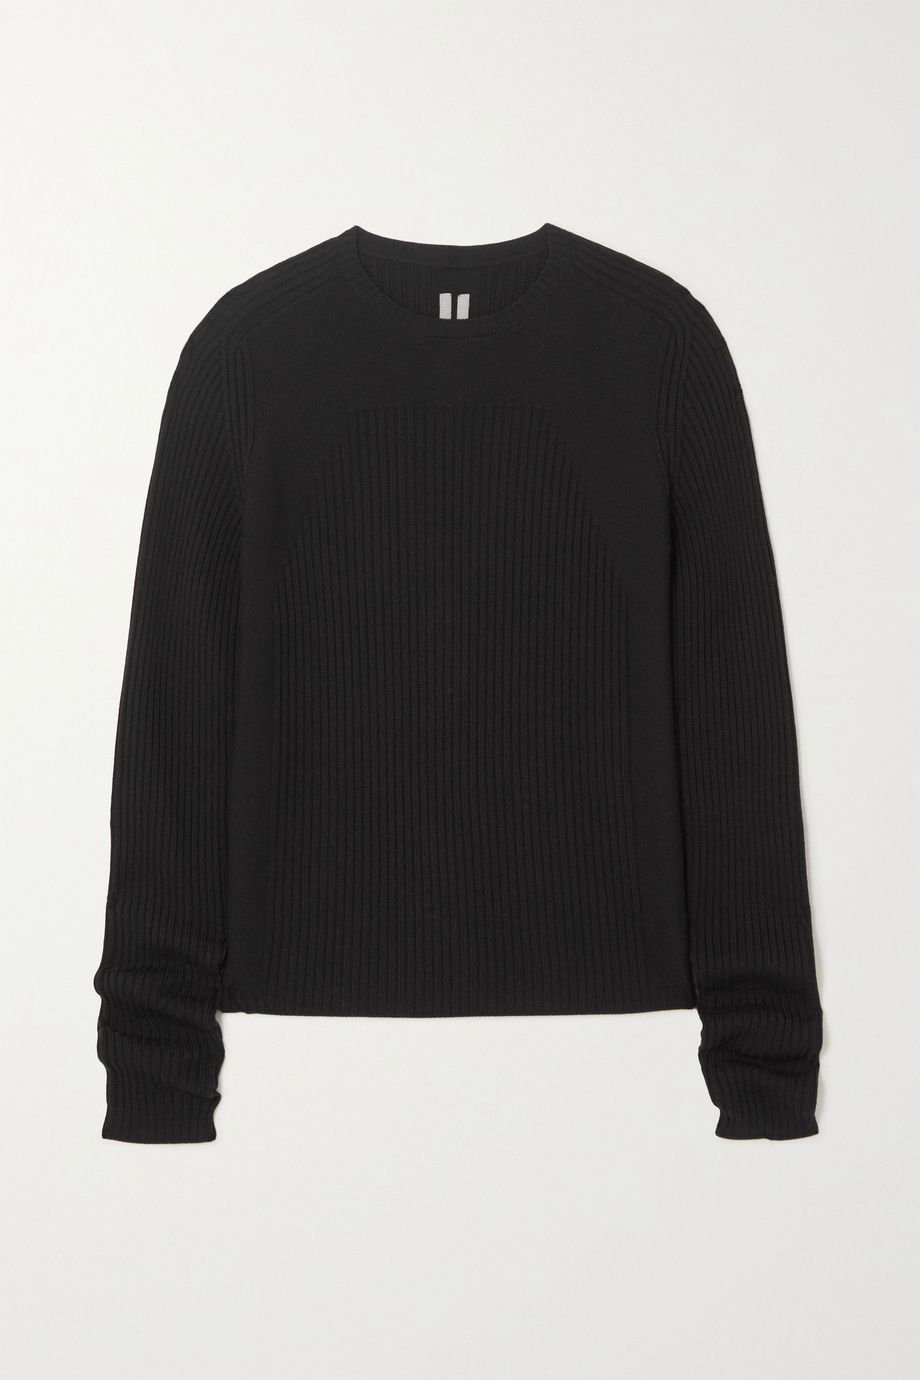 Rick Owens Maglia ribbed wool sweater